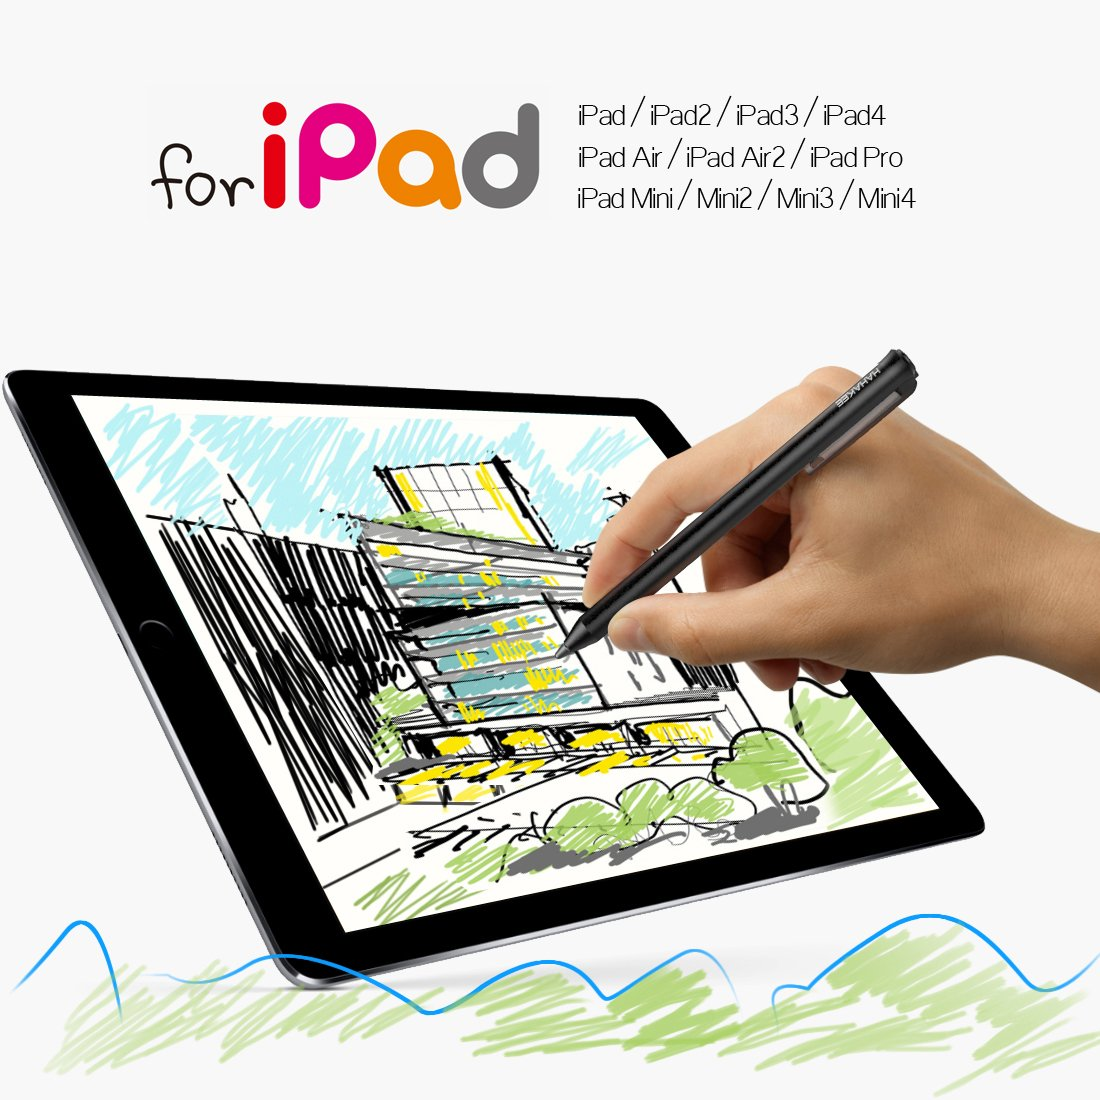 HAHAKEE iPad Stylus Pen, No Bluetooth Connection, Support 40hrs Working & 30Days Standby, High Precision Rechargeable Stylus for ipad Series, Passed FCC Certification by HAHAKEE-life (Image #7)